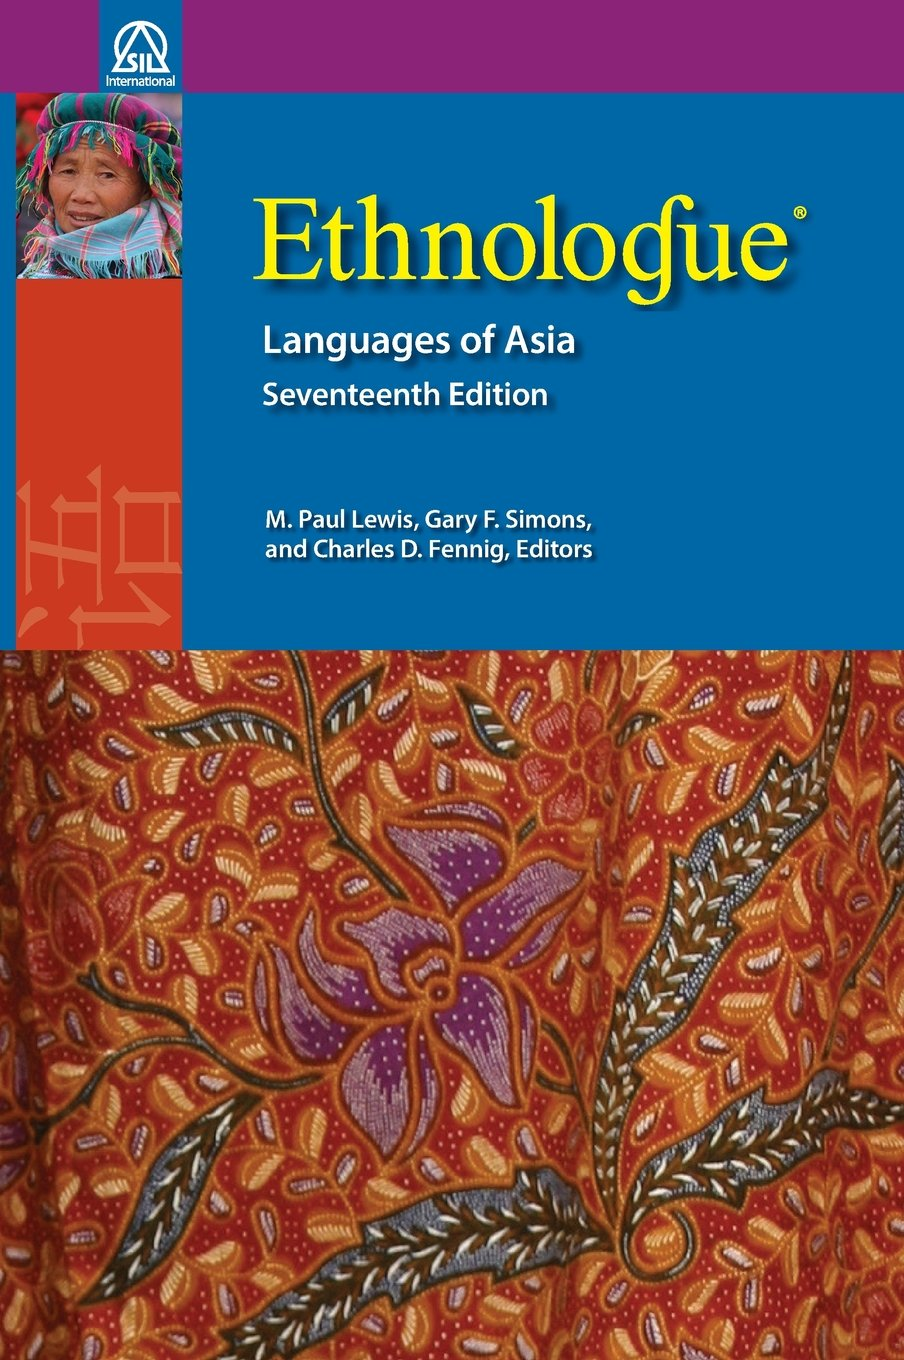 Ethnologue: Languages of Asia, 17th Edition